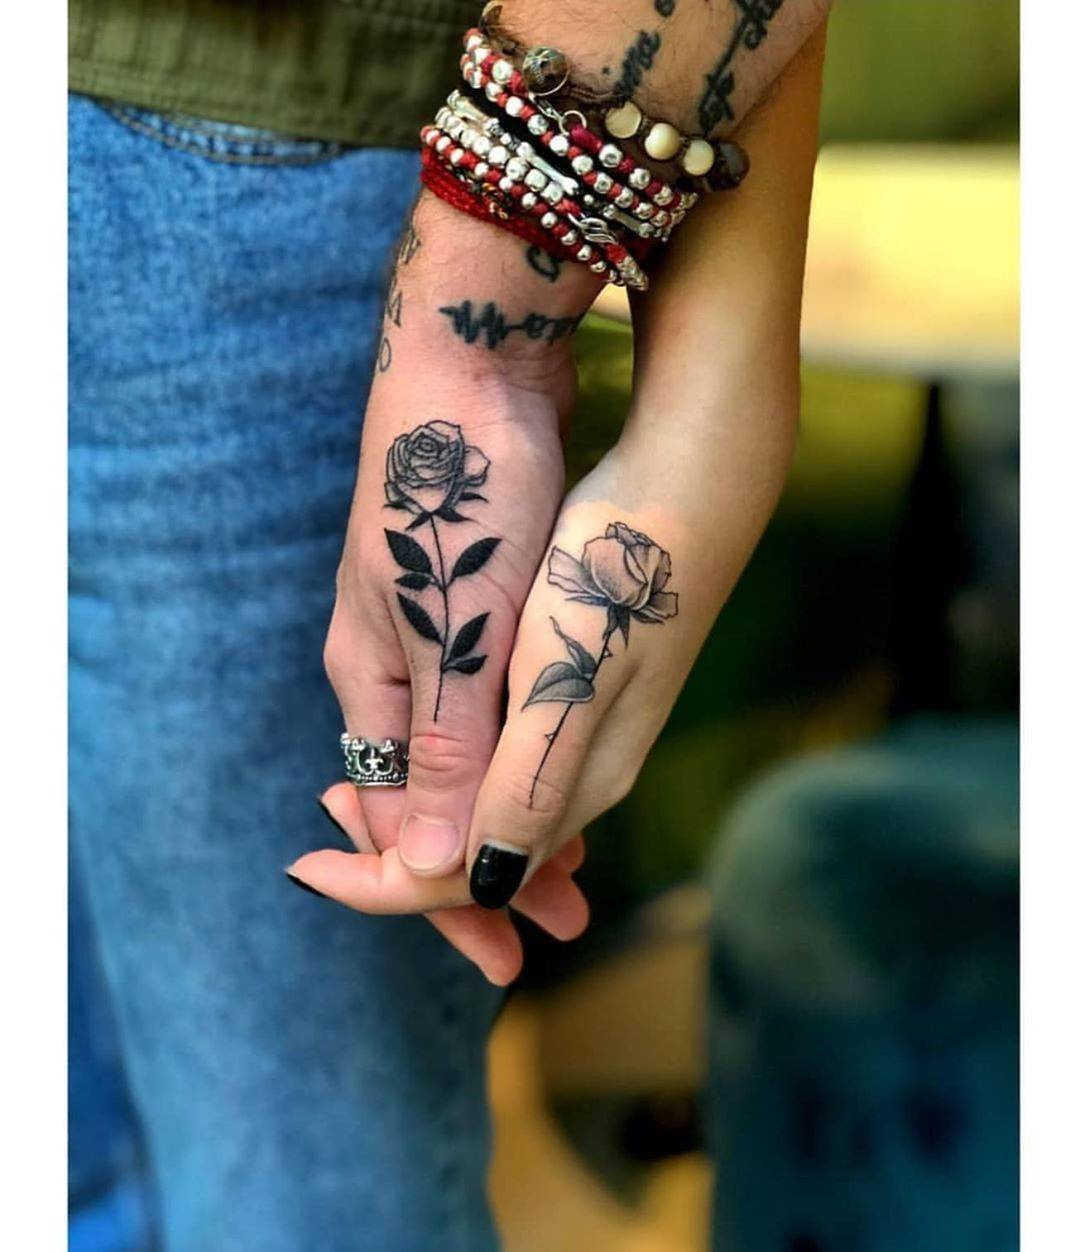 Gorgeous And Incredible Couple Matching Tattoo Designs You Must Try With Your Love; Couple Tattoo Ideas; Couple Tattoos; Matching Couple Tattoos;Simple Couple Matching Tattoo;Tattoos;  #Tattoos #Coupletattoo#Matchingtattoo